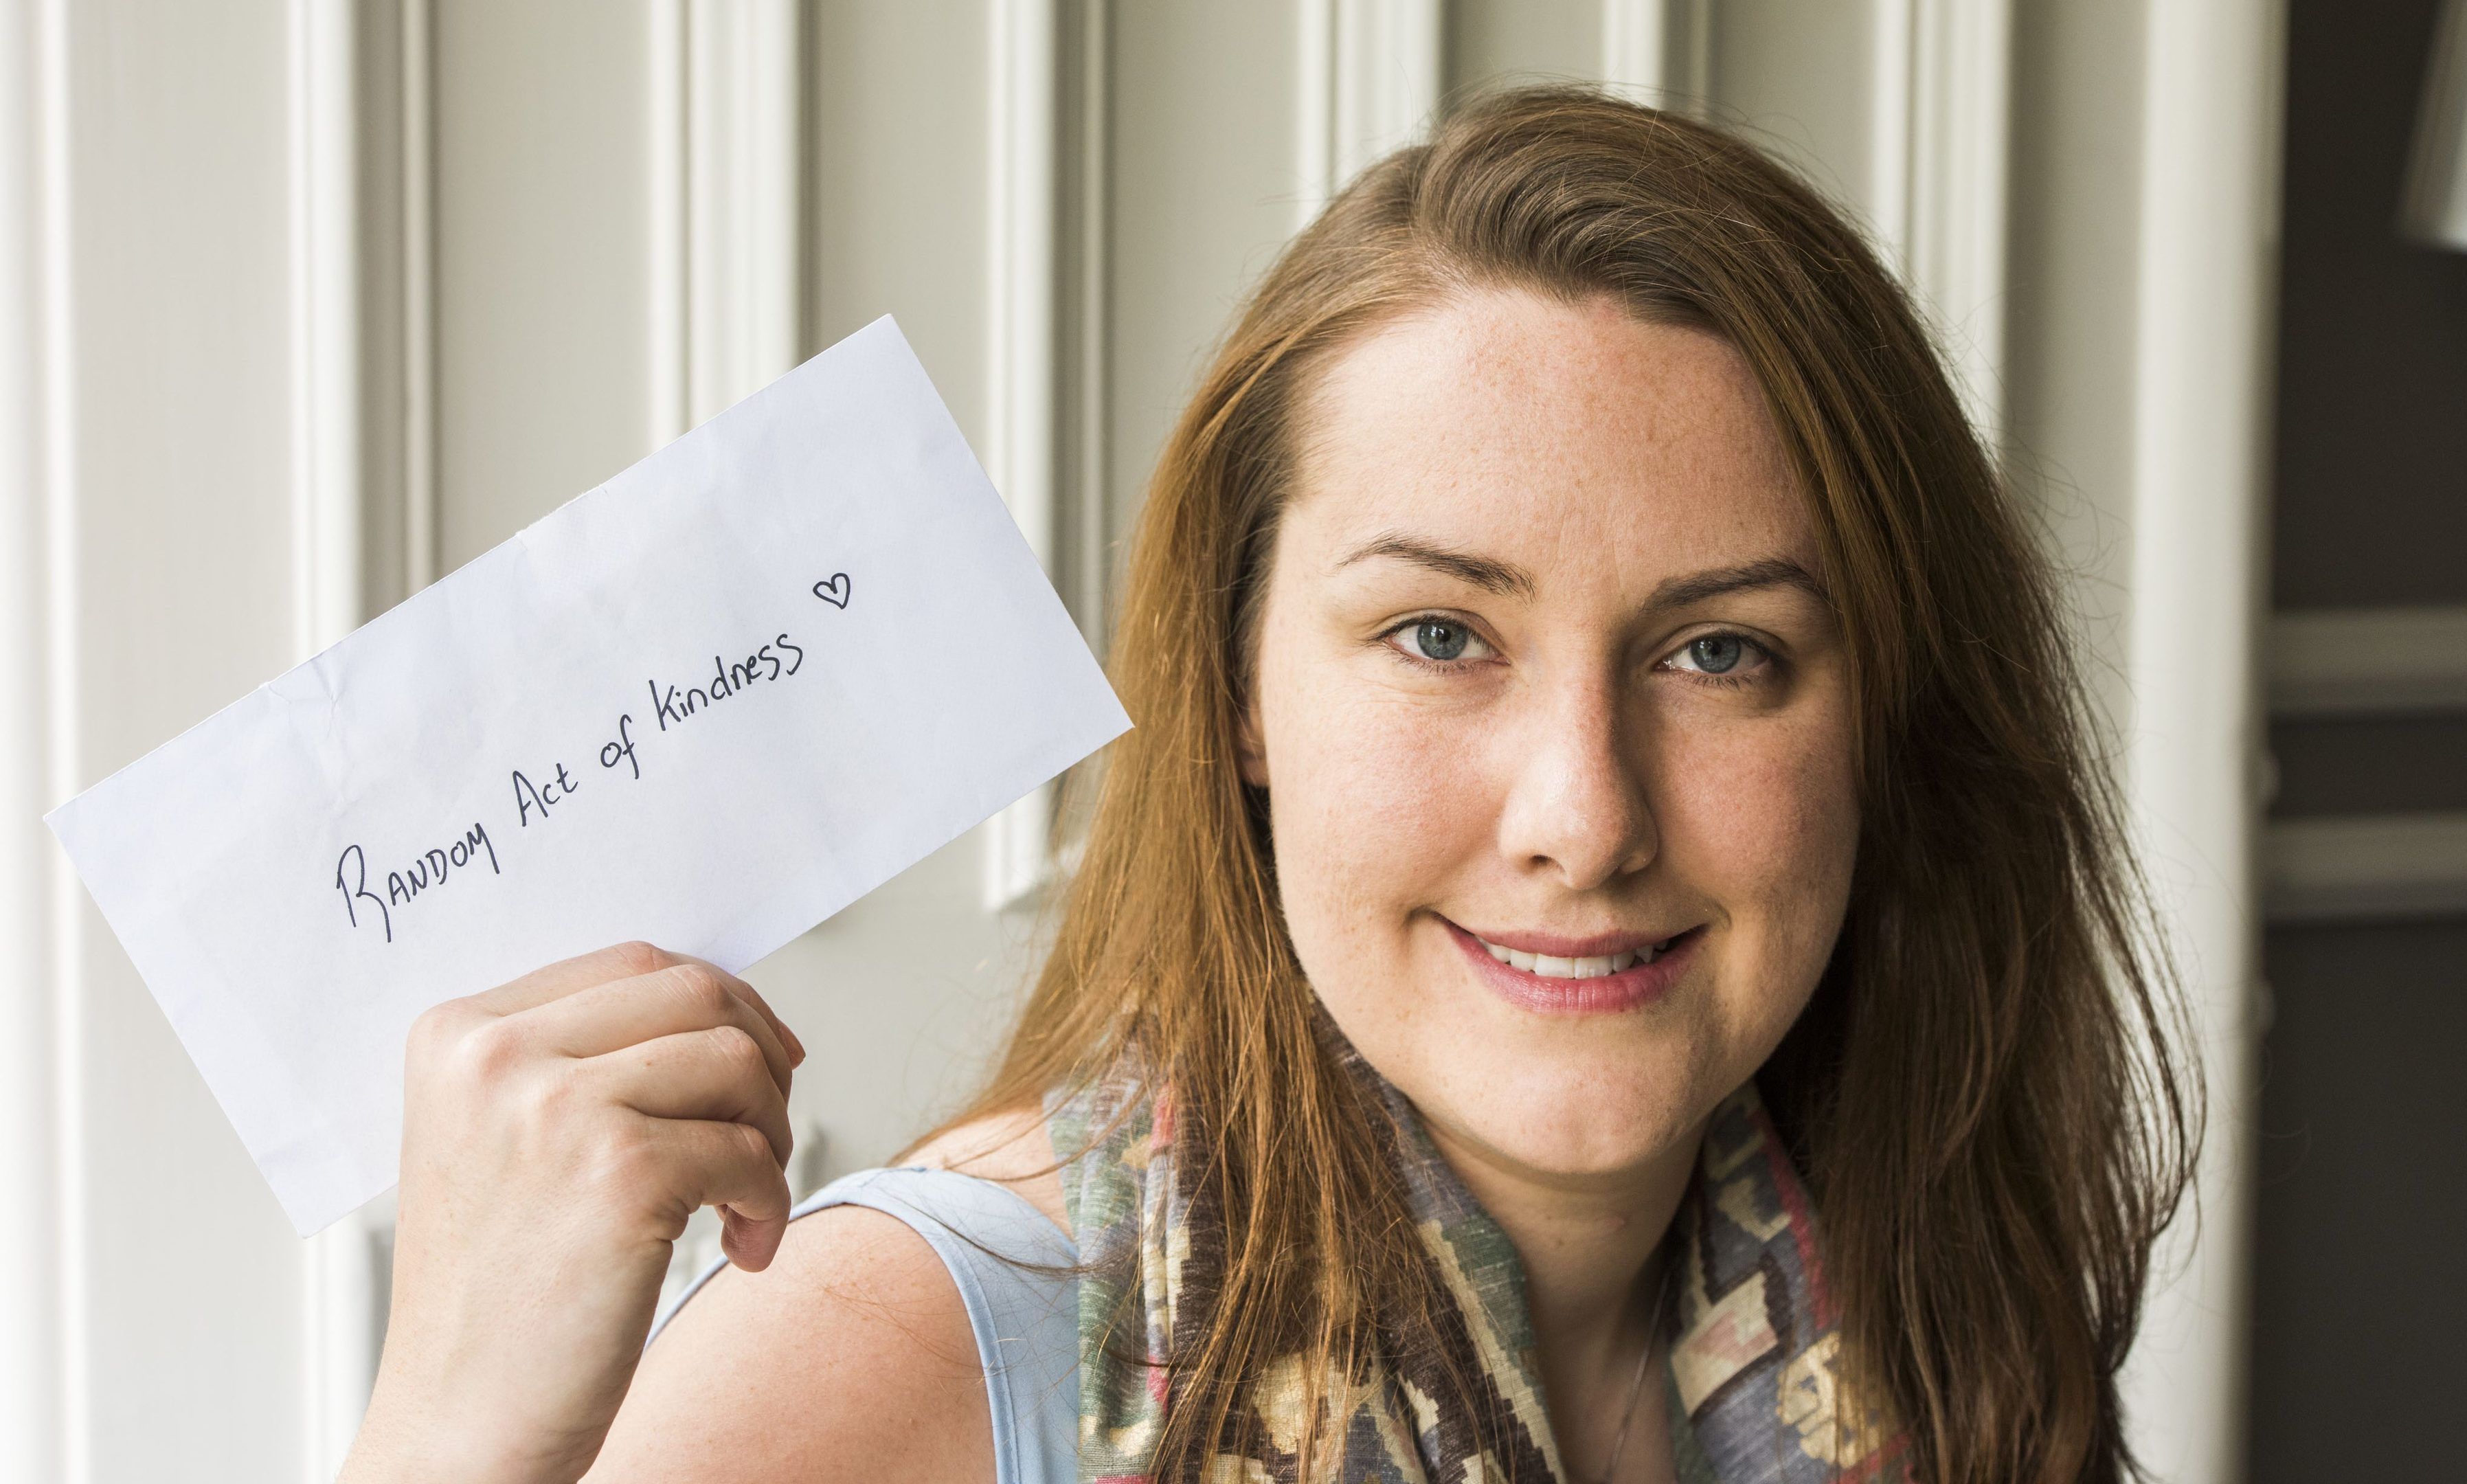 Emma Storrar with the envelope from Fiona Munro